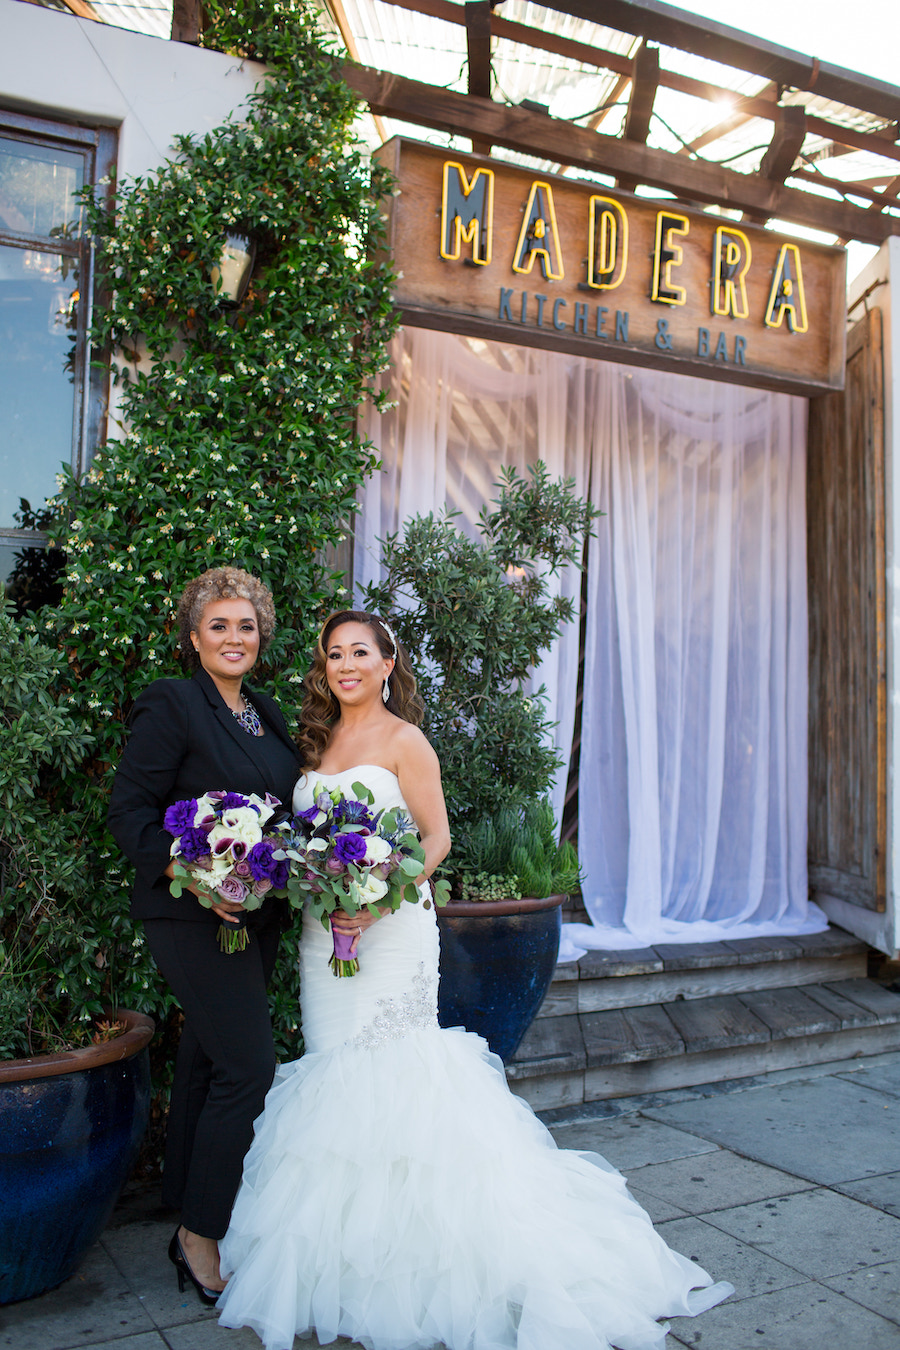 newlyweds in front of madera kitchen los angeles